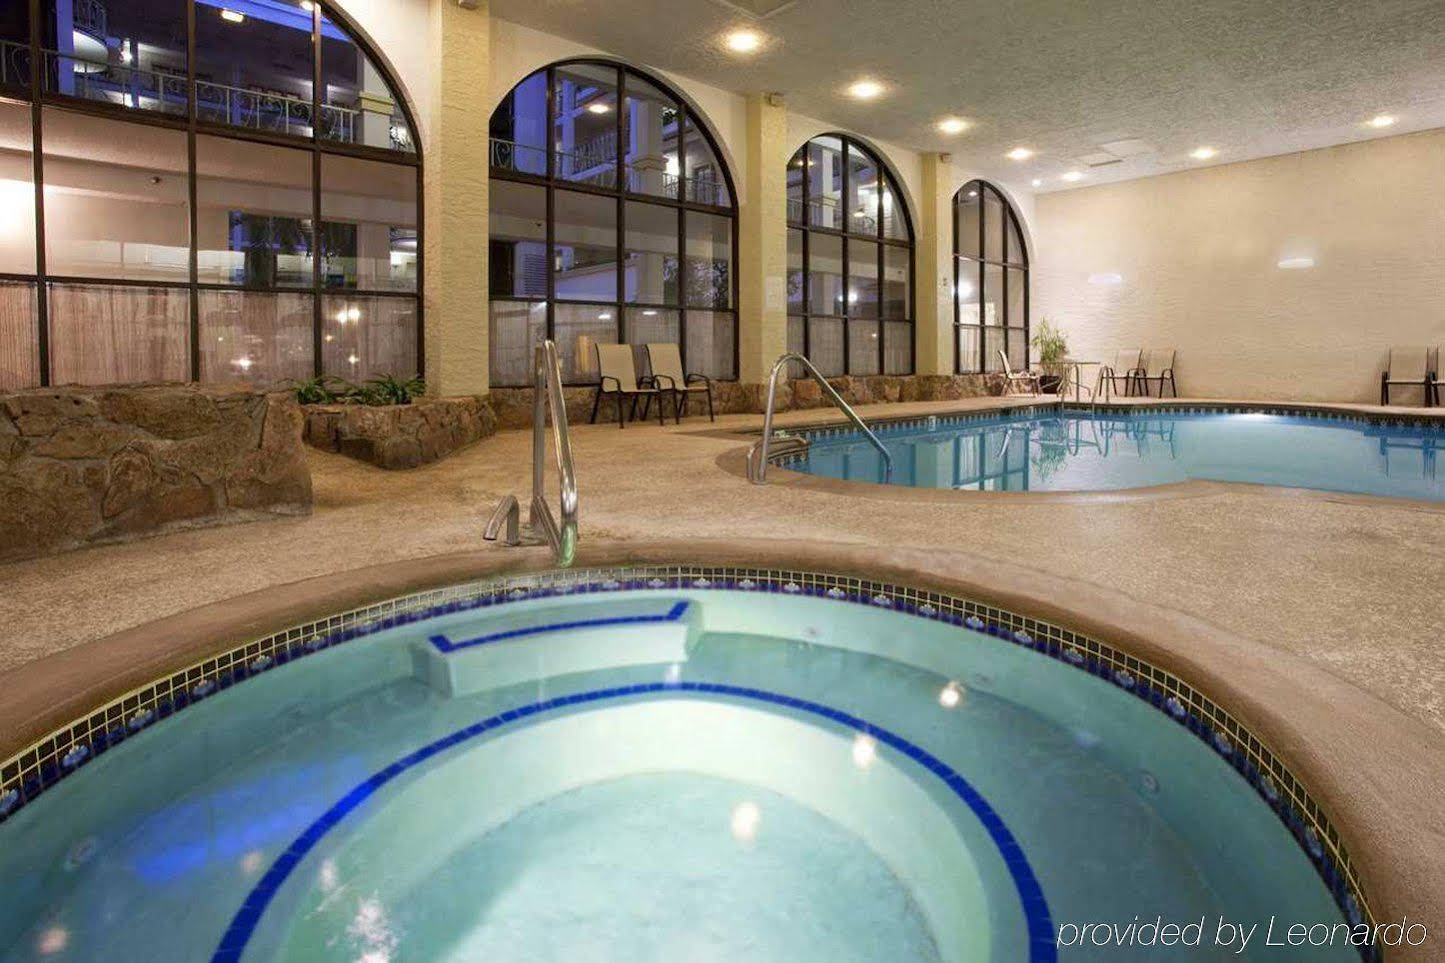 Embassy suites by hilton denver tech center north - North east hotels with swimming pool ...